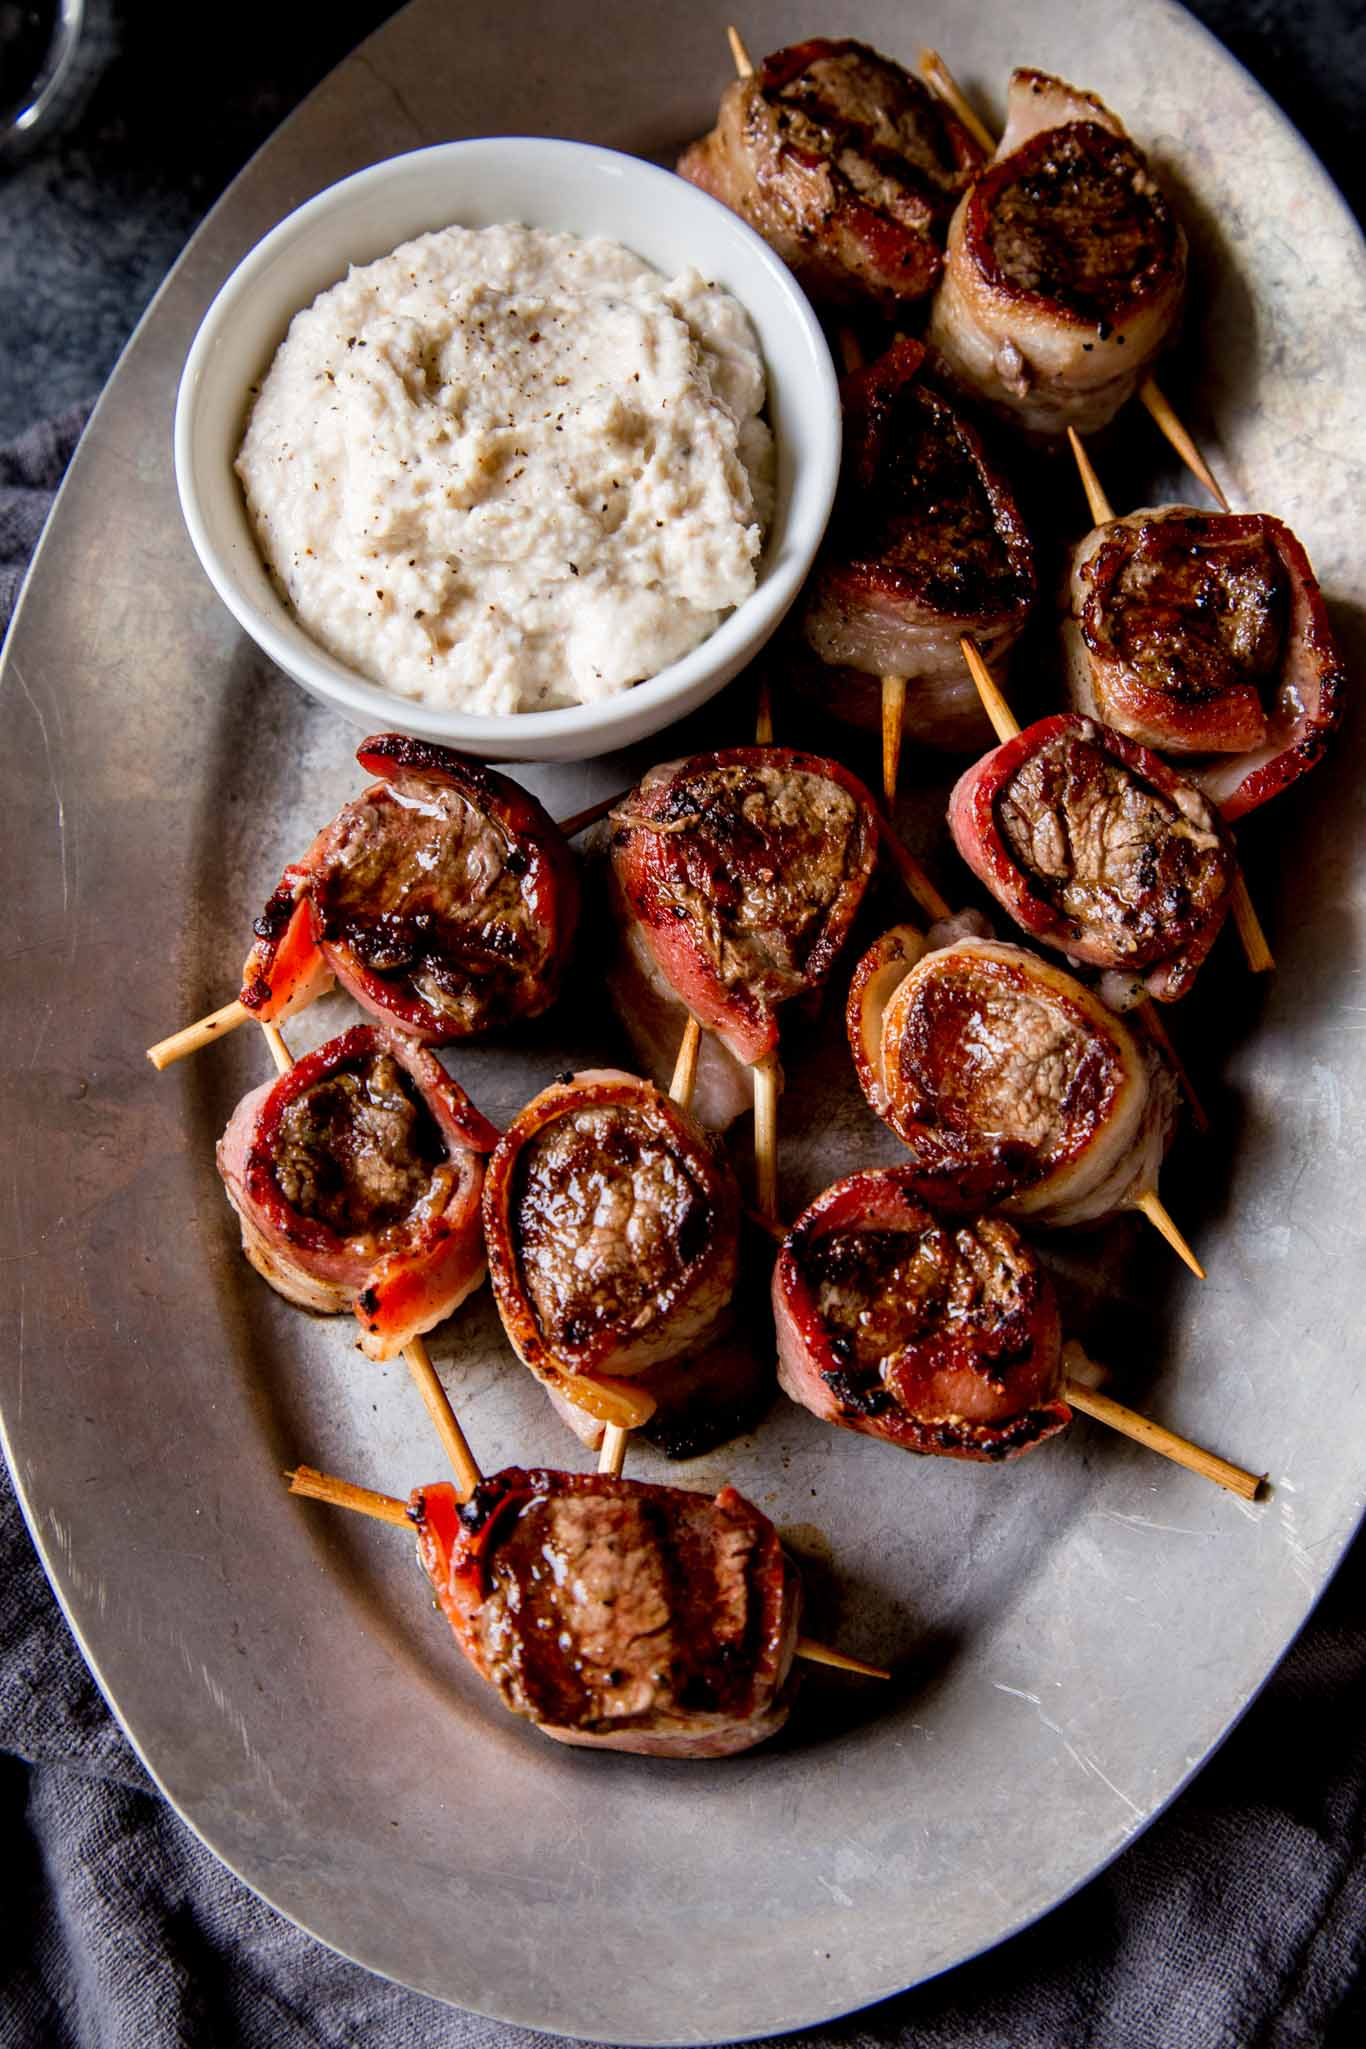 filet mignon bites on platter with creamy horseradish